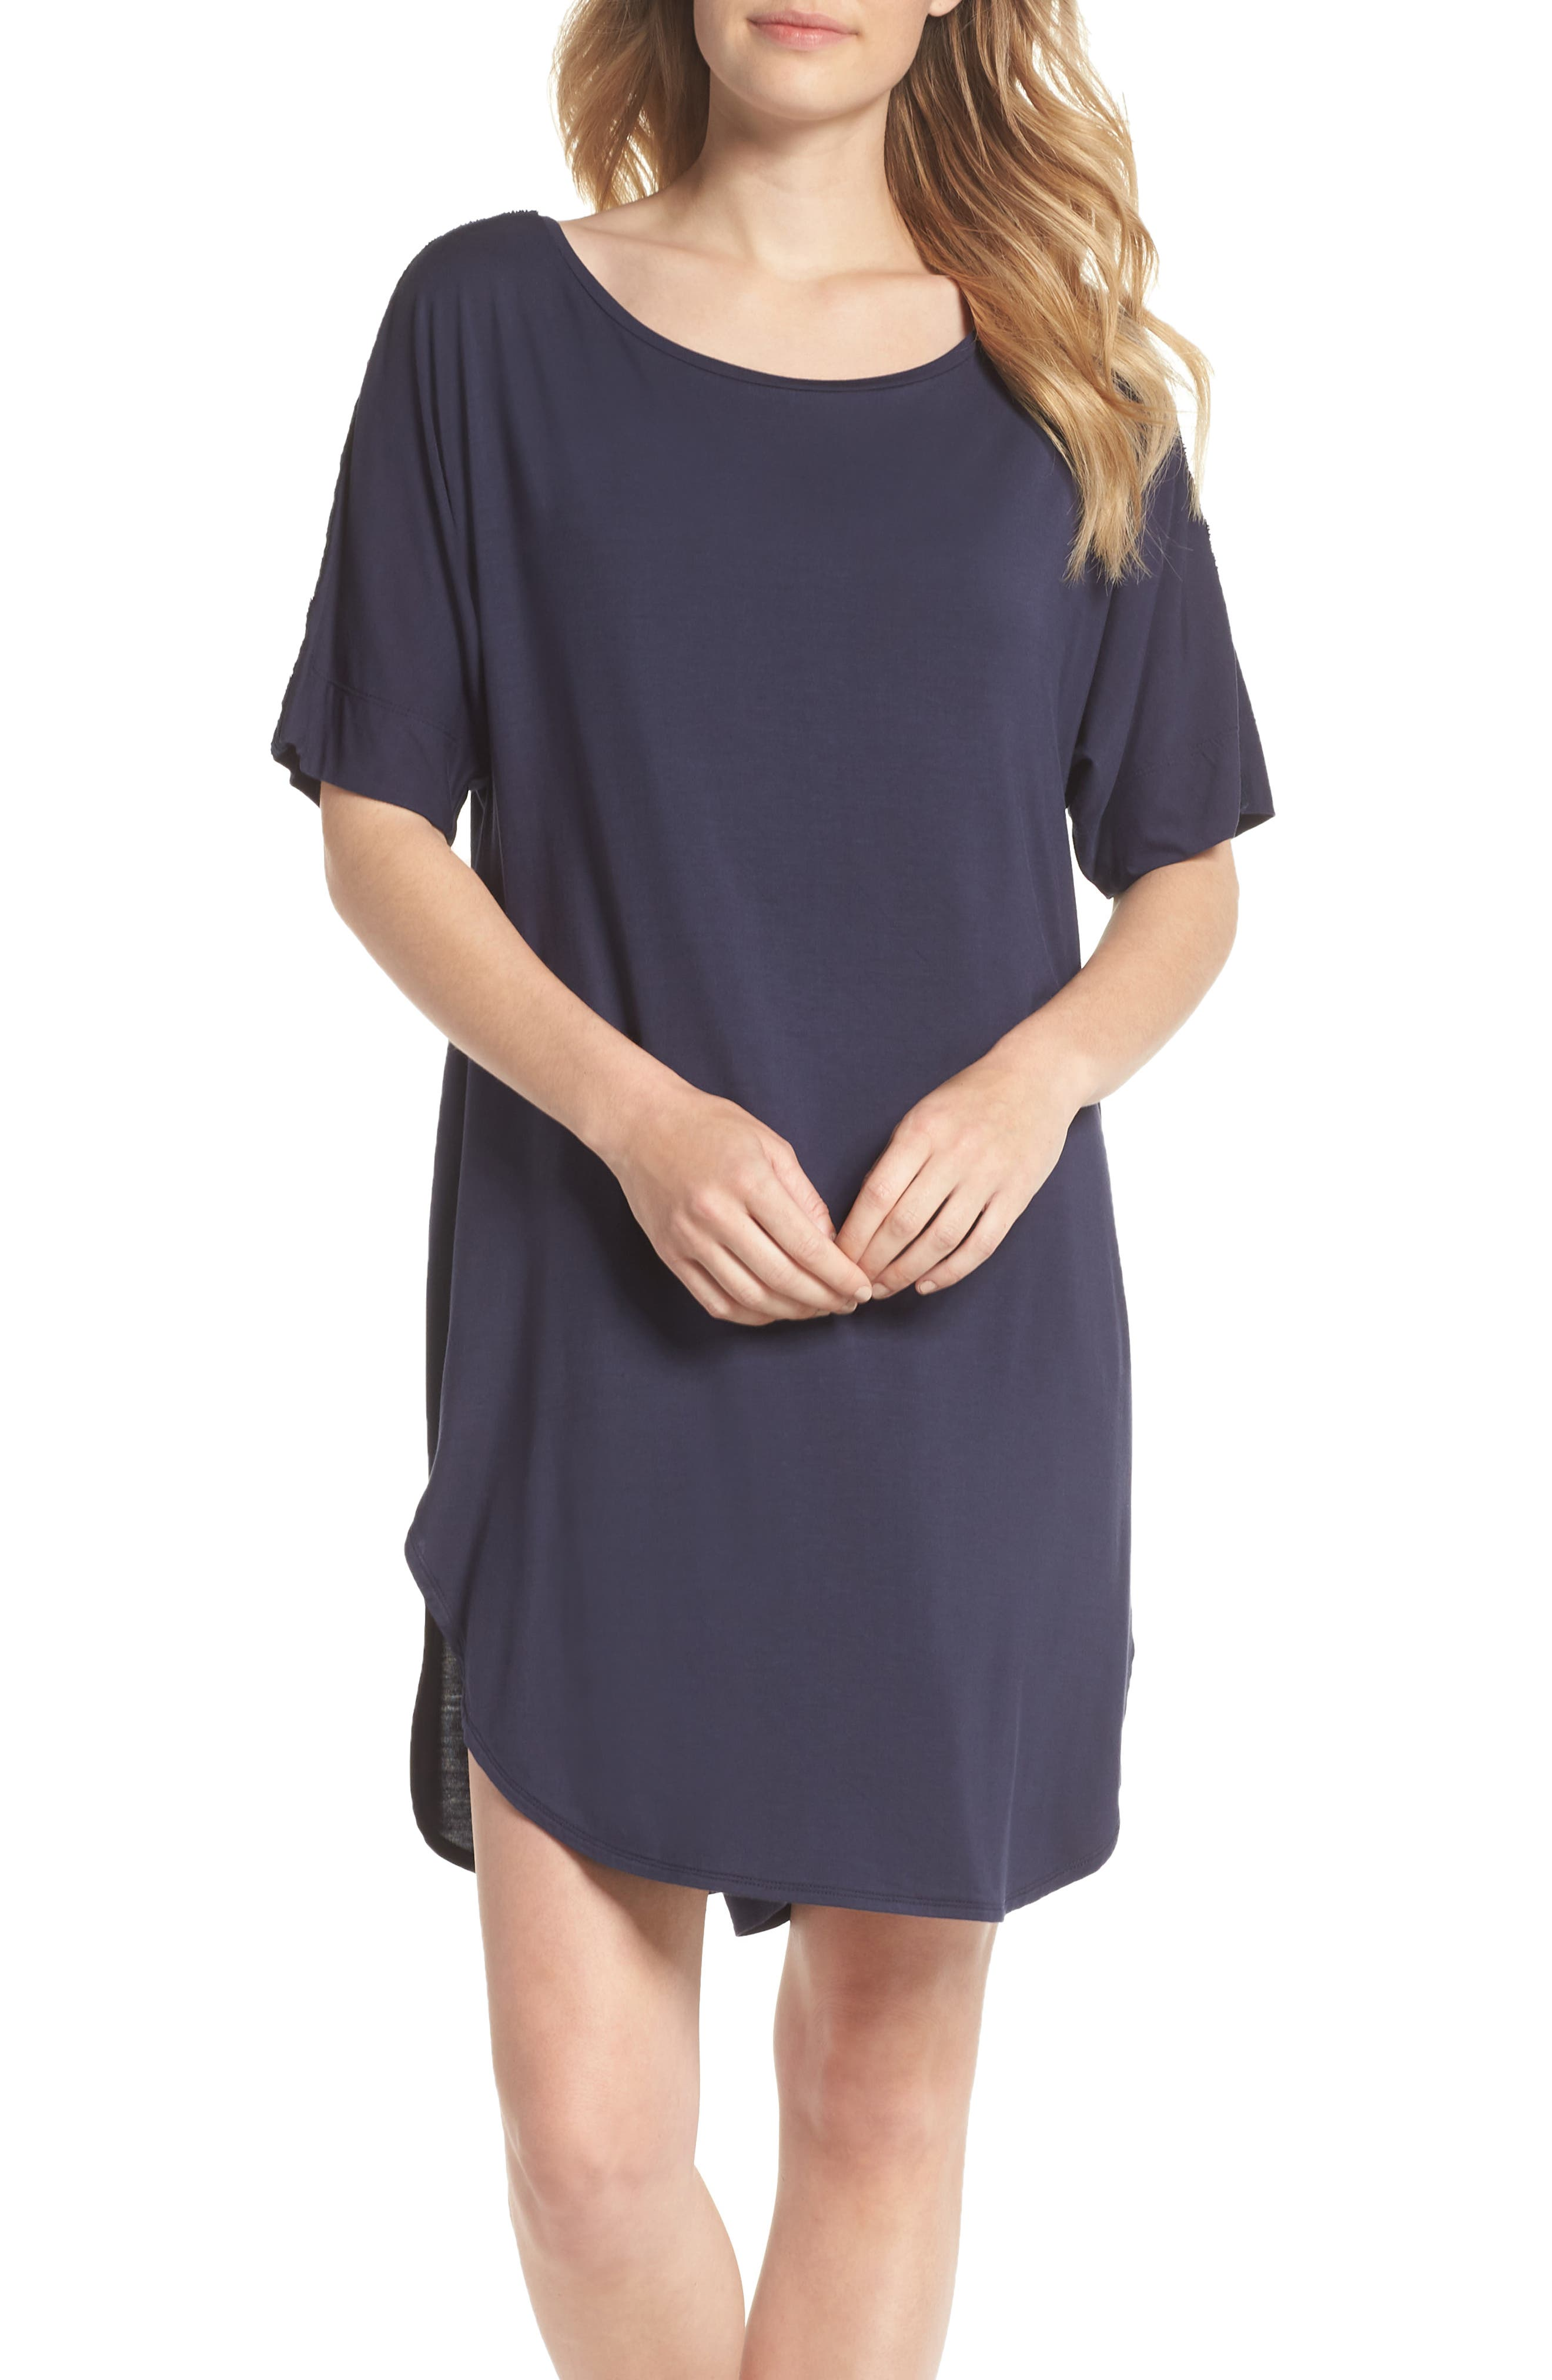 Feathers Essential Sleep Shirt,                         Main,                         color, NIGHT BLUE